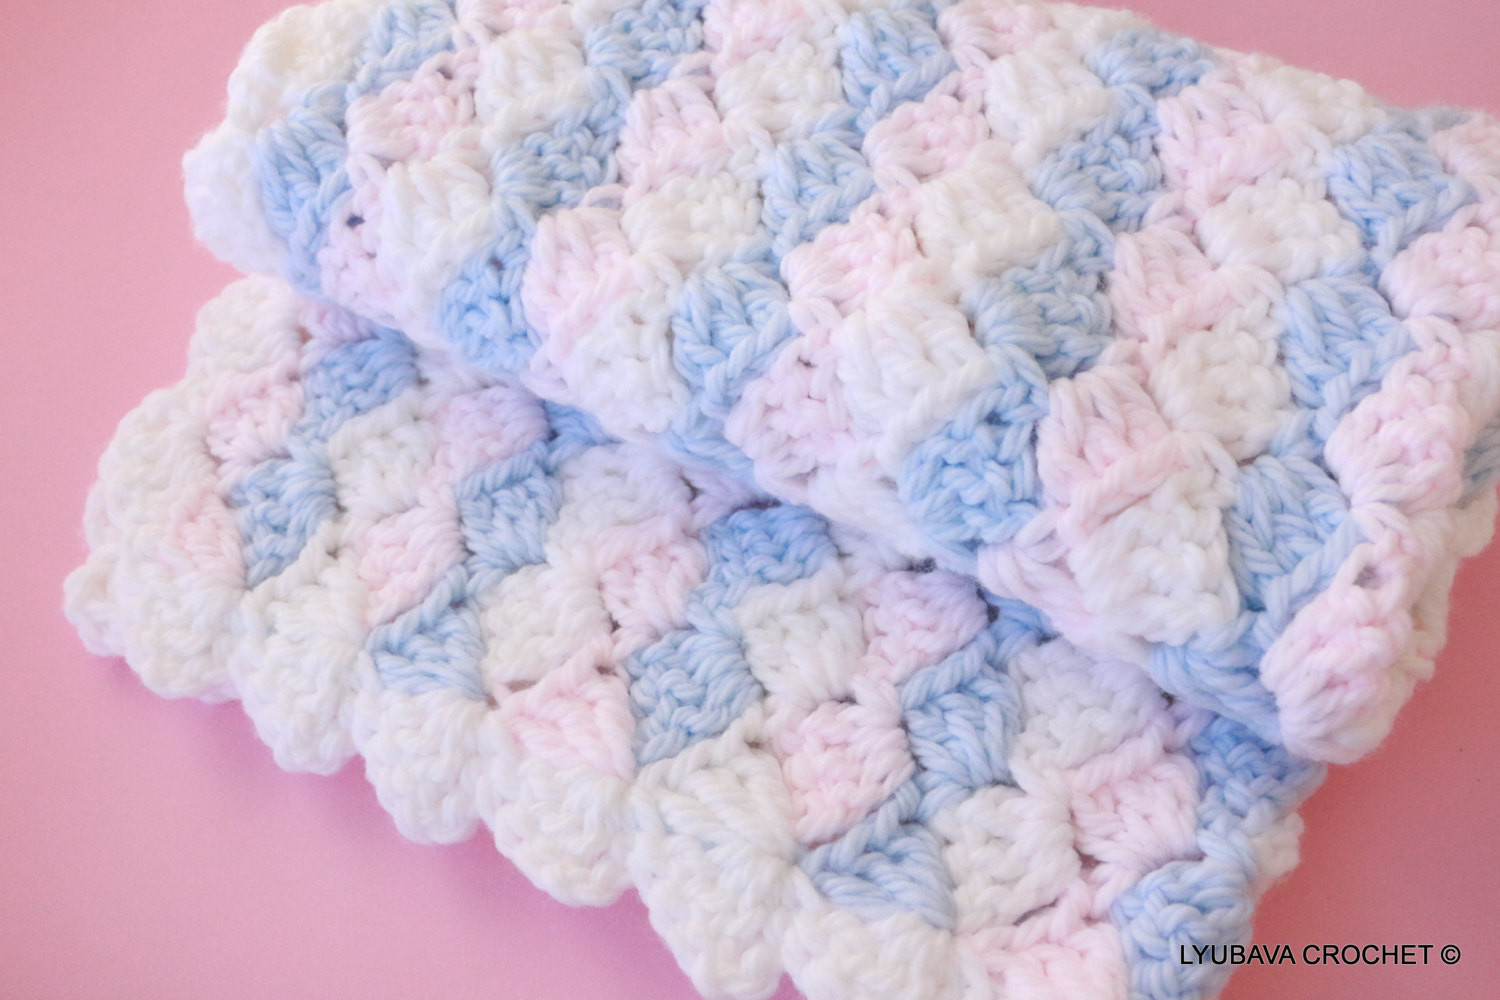 Crochet Patterns for Baby Blankets New Free Baby Blanket Crochet Patterns Easy Of Great 50 Photos Crochet Patterns for Baby Blankets